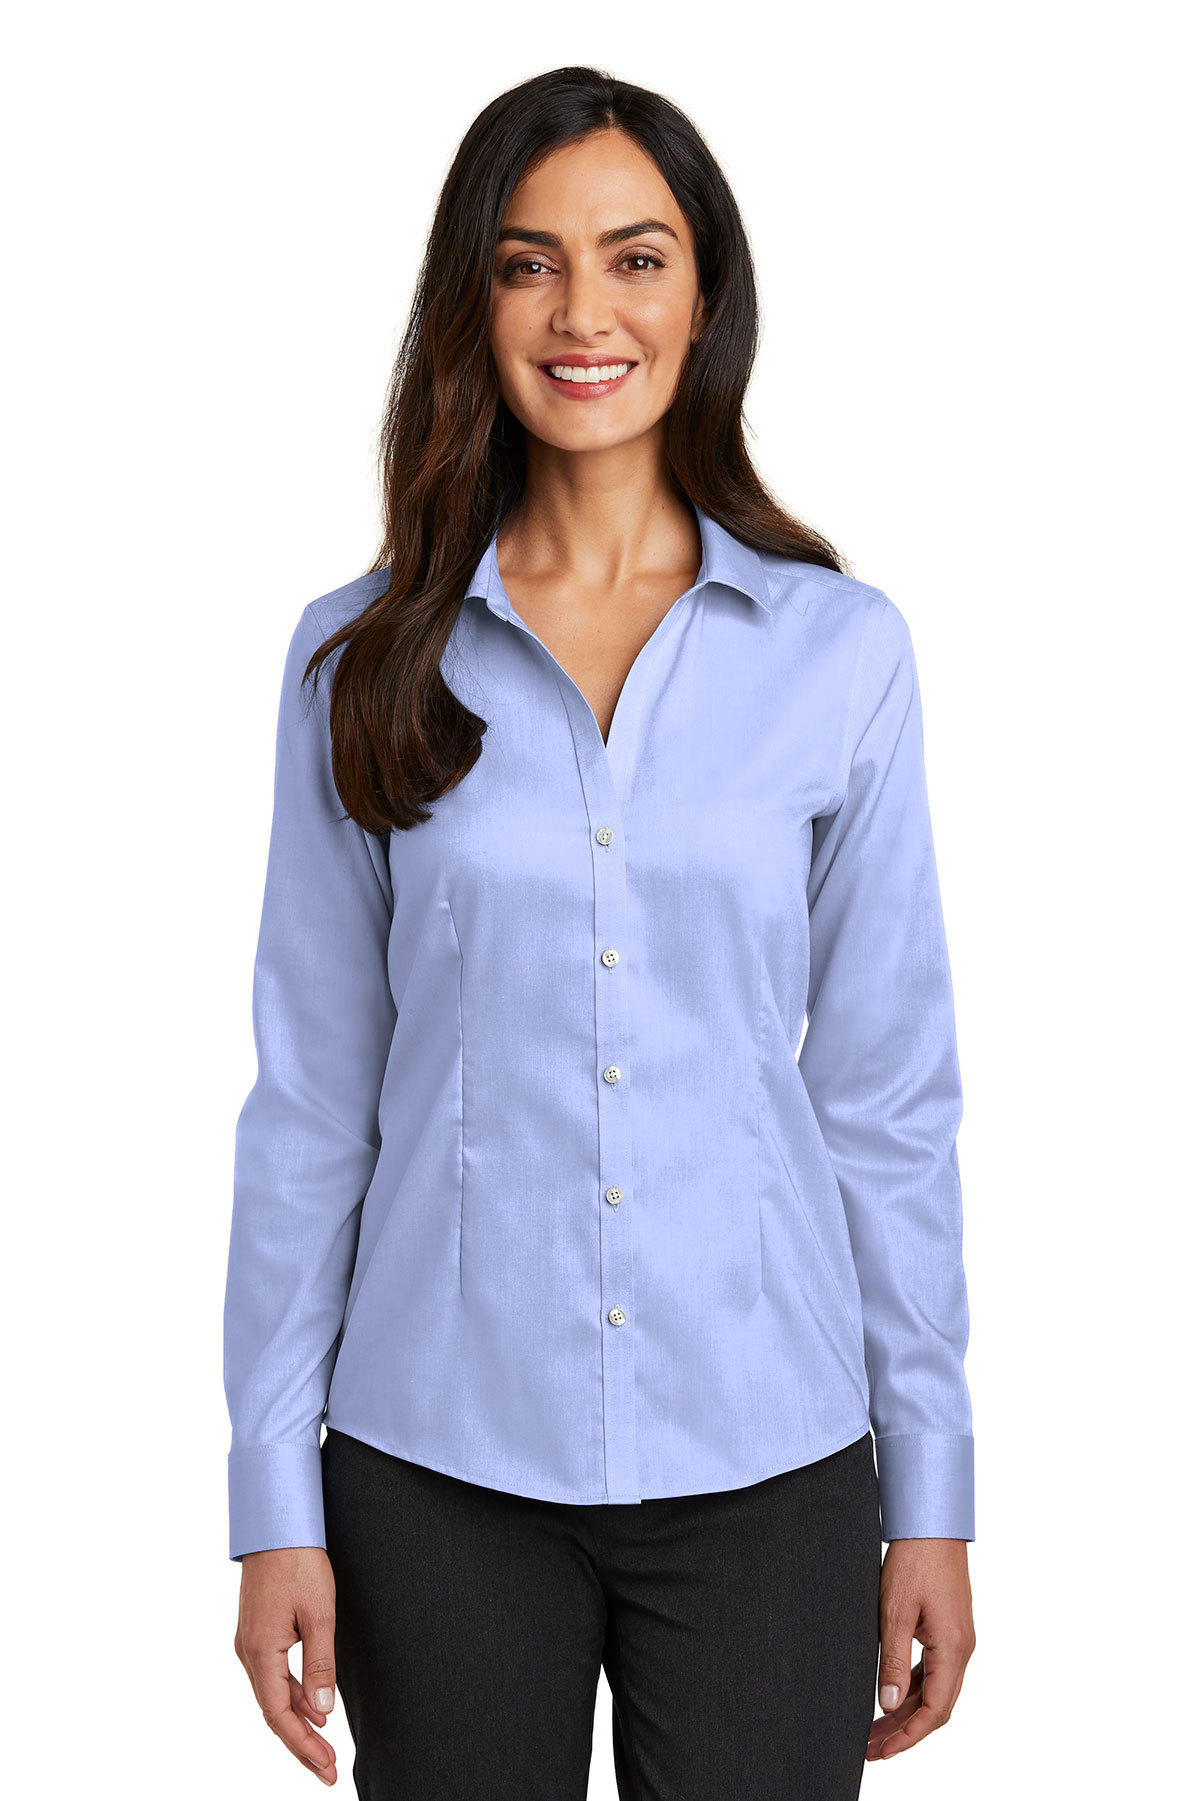 Red House Ladies Pinpoint Oxford Non Iron Shirt Woven Shirts